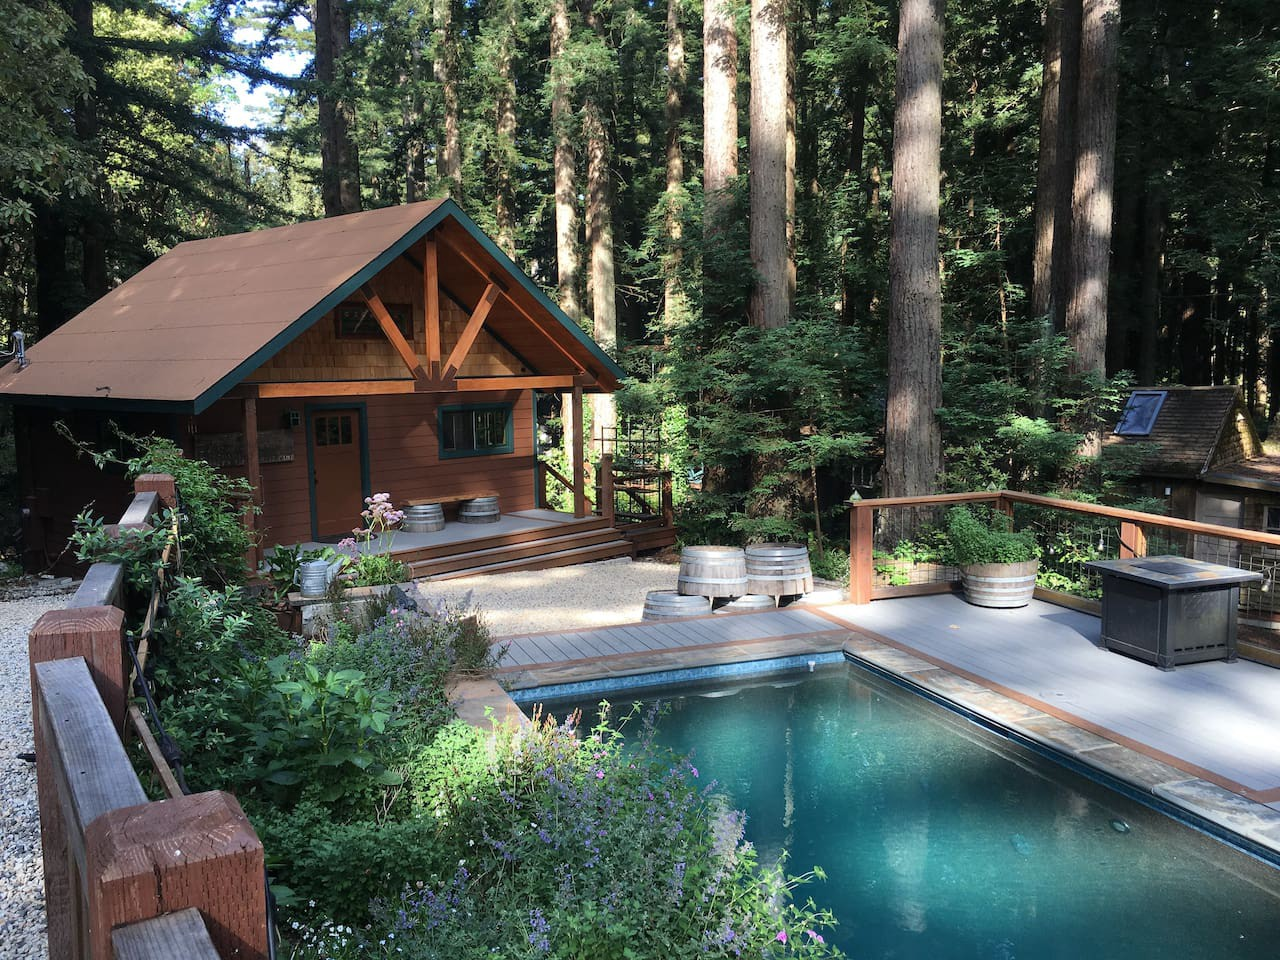 Pandemic Staycation Bay Area Airbnbs With Pools By Allison Hirschlag The Bold Italic